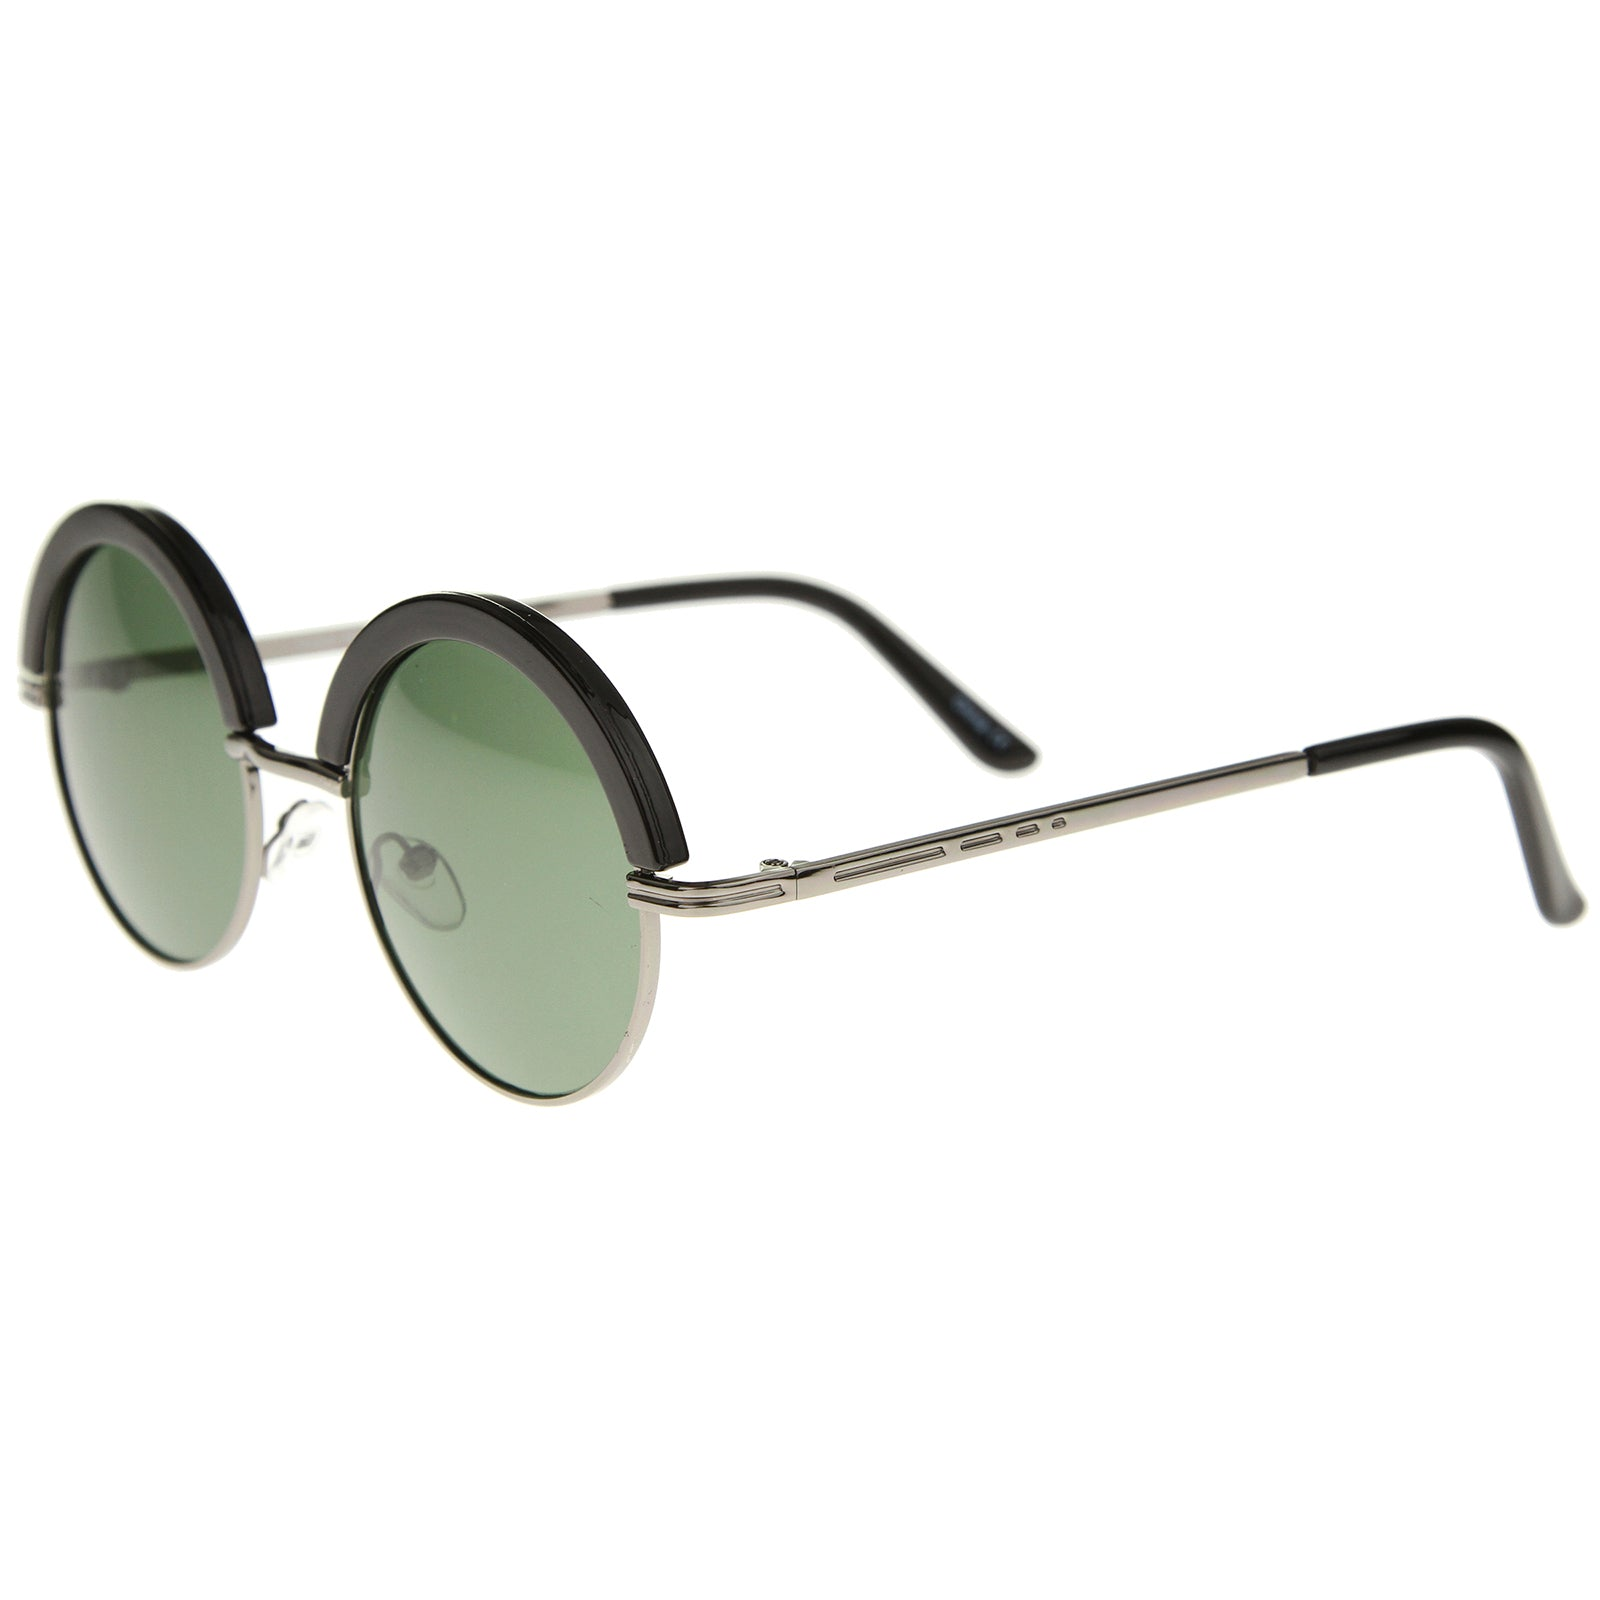 Womens Metal Round Sunglasses With UV400 Protected Composite Lens - sunglass.la - 15